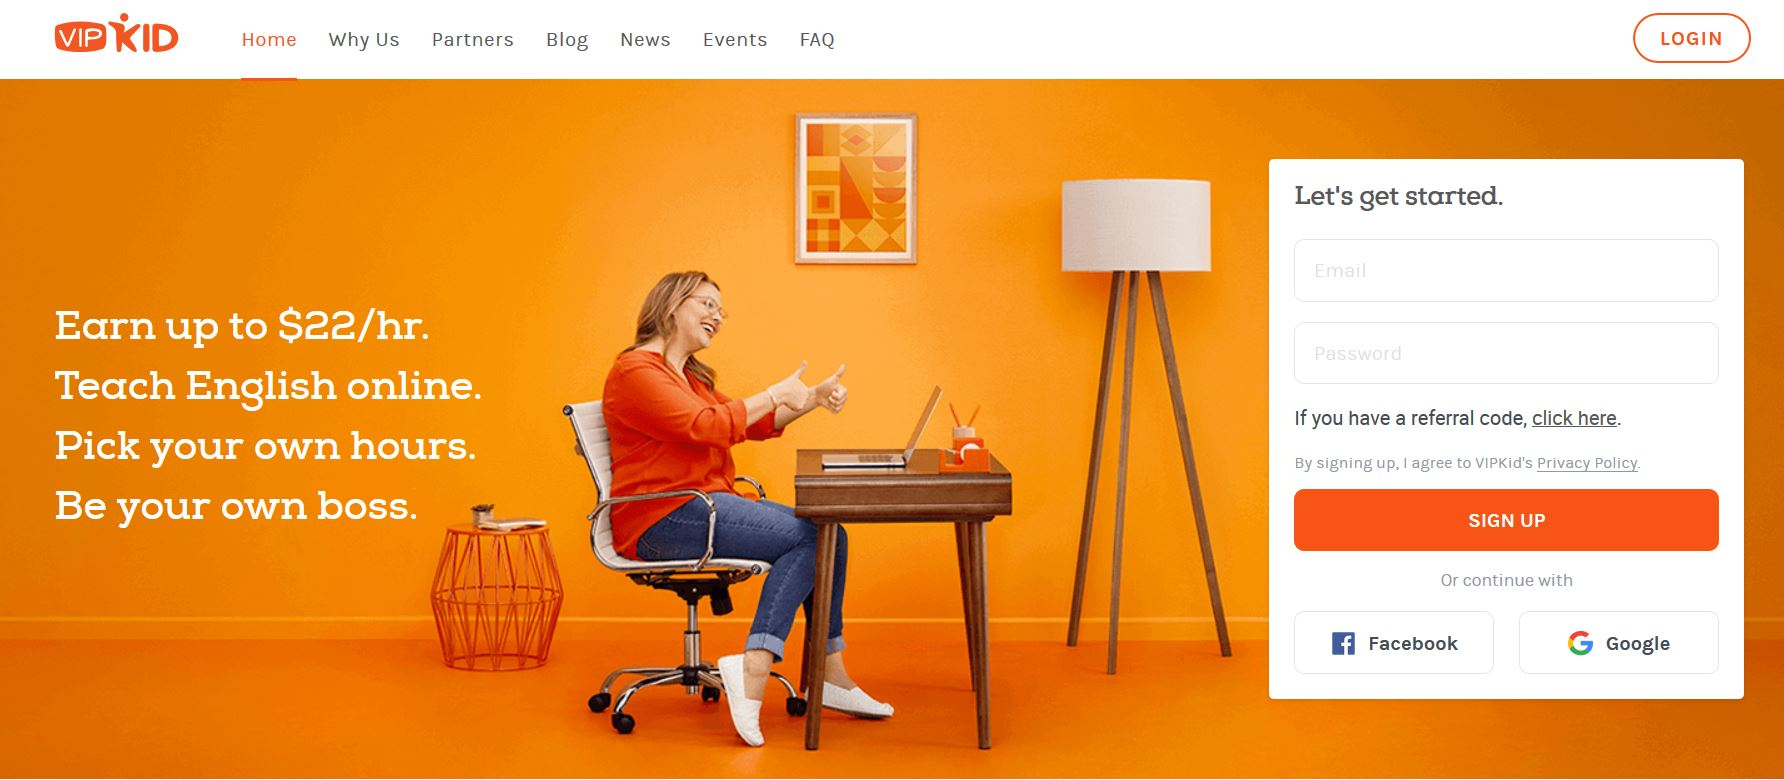 vipkid review - about company